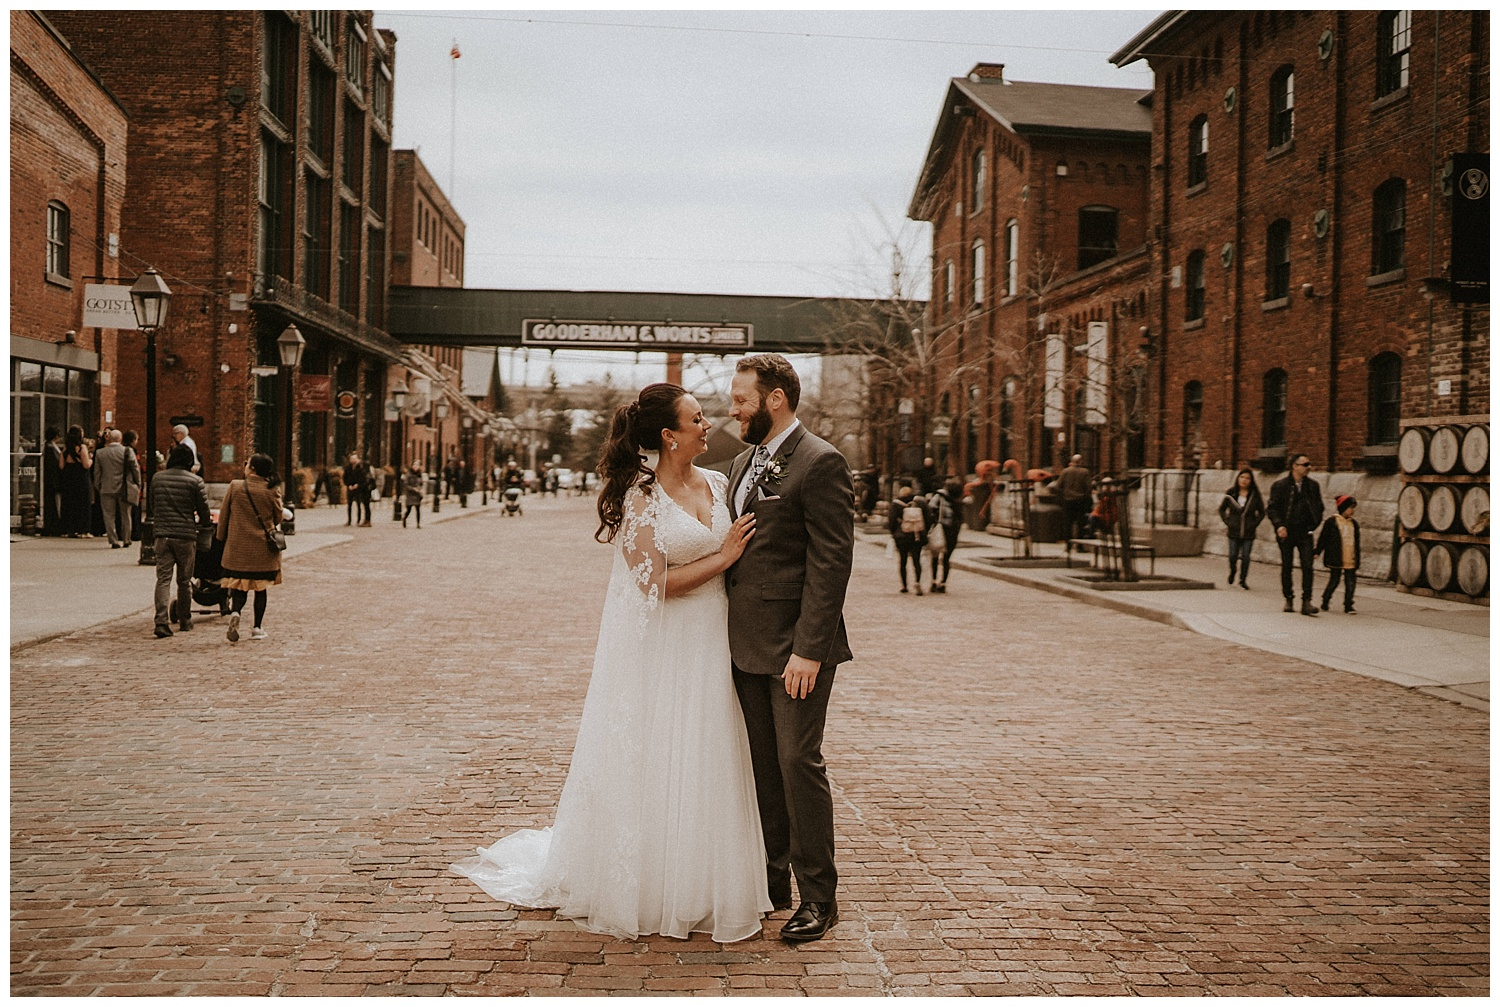 Katie Marie Photography | Archeo Wedding Arta Gallery Wedding | Distillery District Wedding | Toronto Wedding Photographer | Hamilton Toronto Ontario Wedding Photographer |_0054.jpg